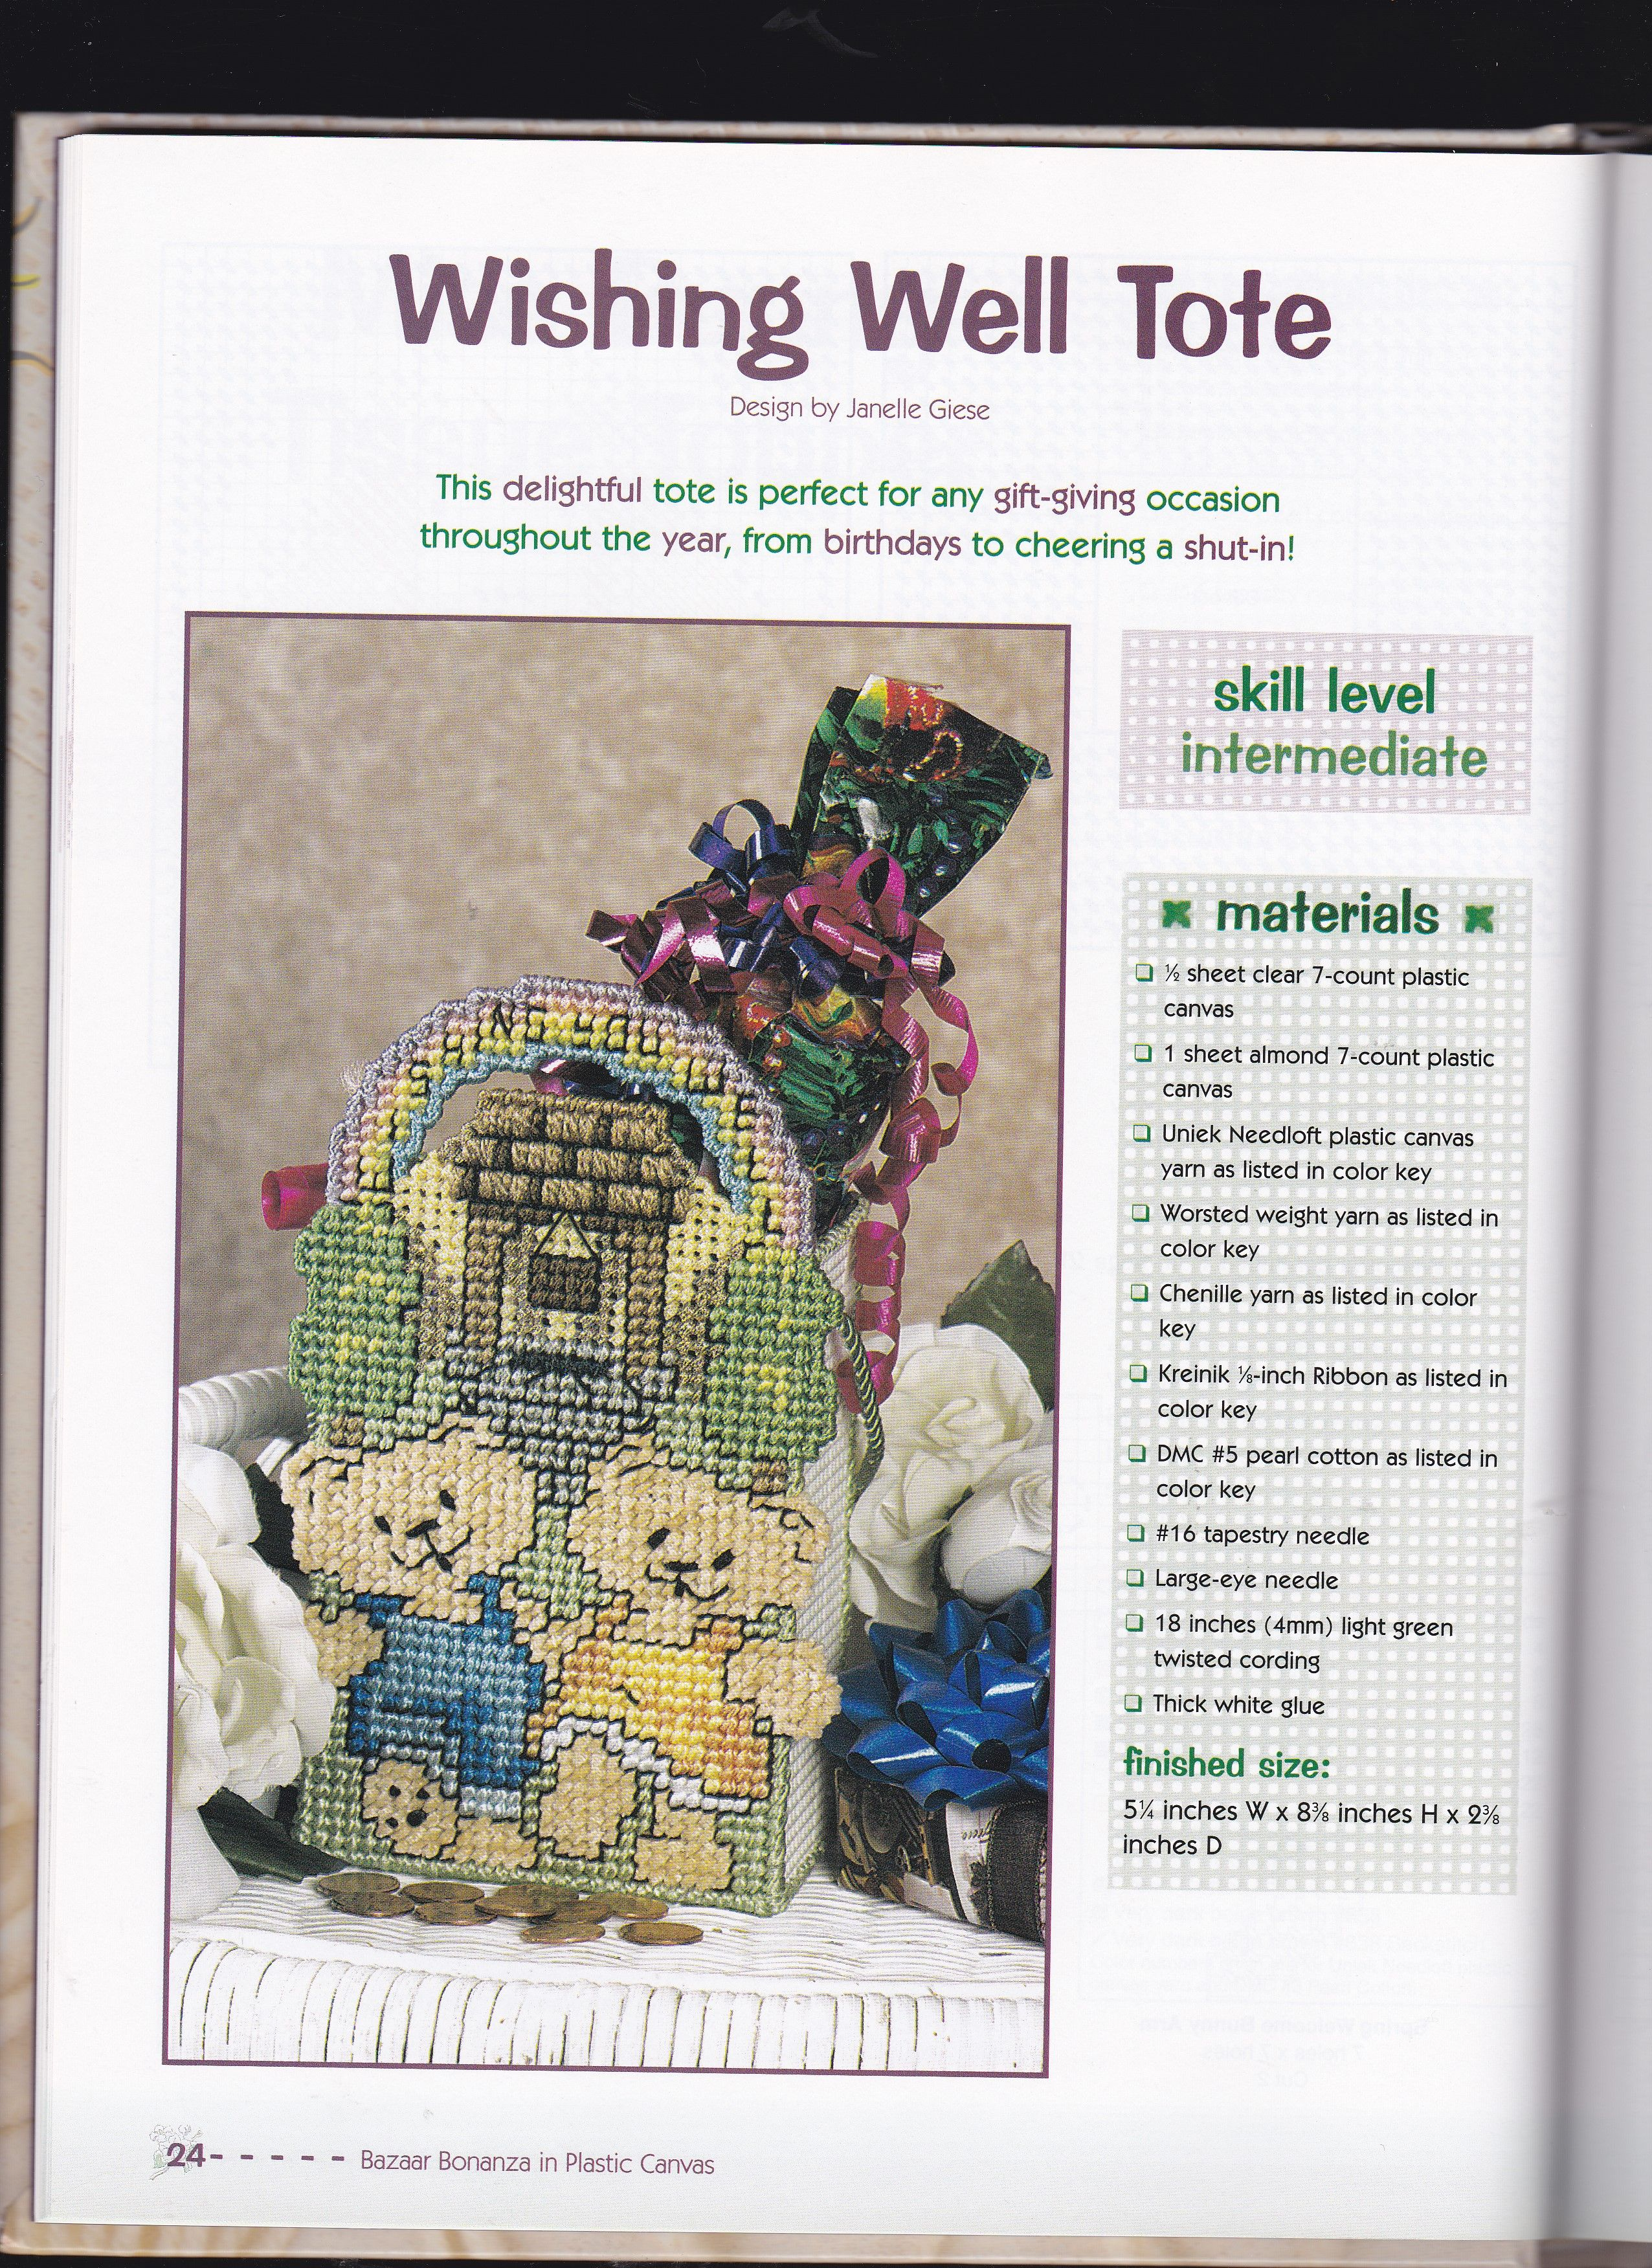 WISHING WELL TOTE by JANELLE GIESE 1/2